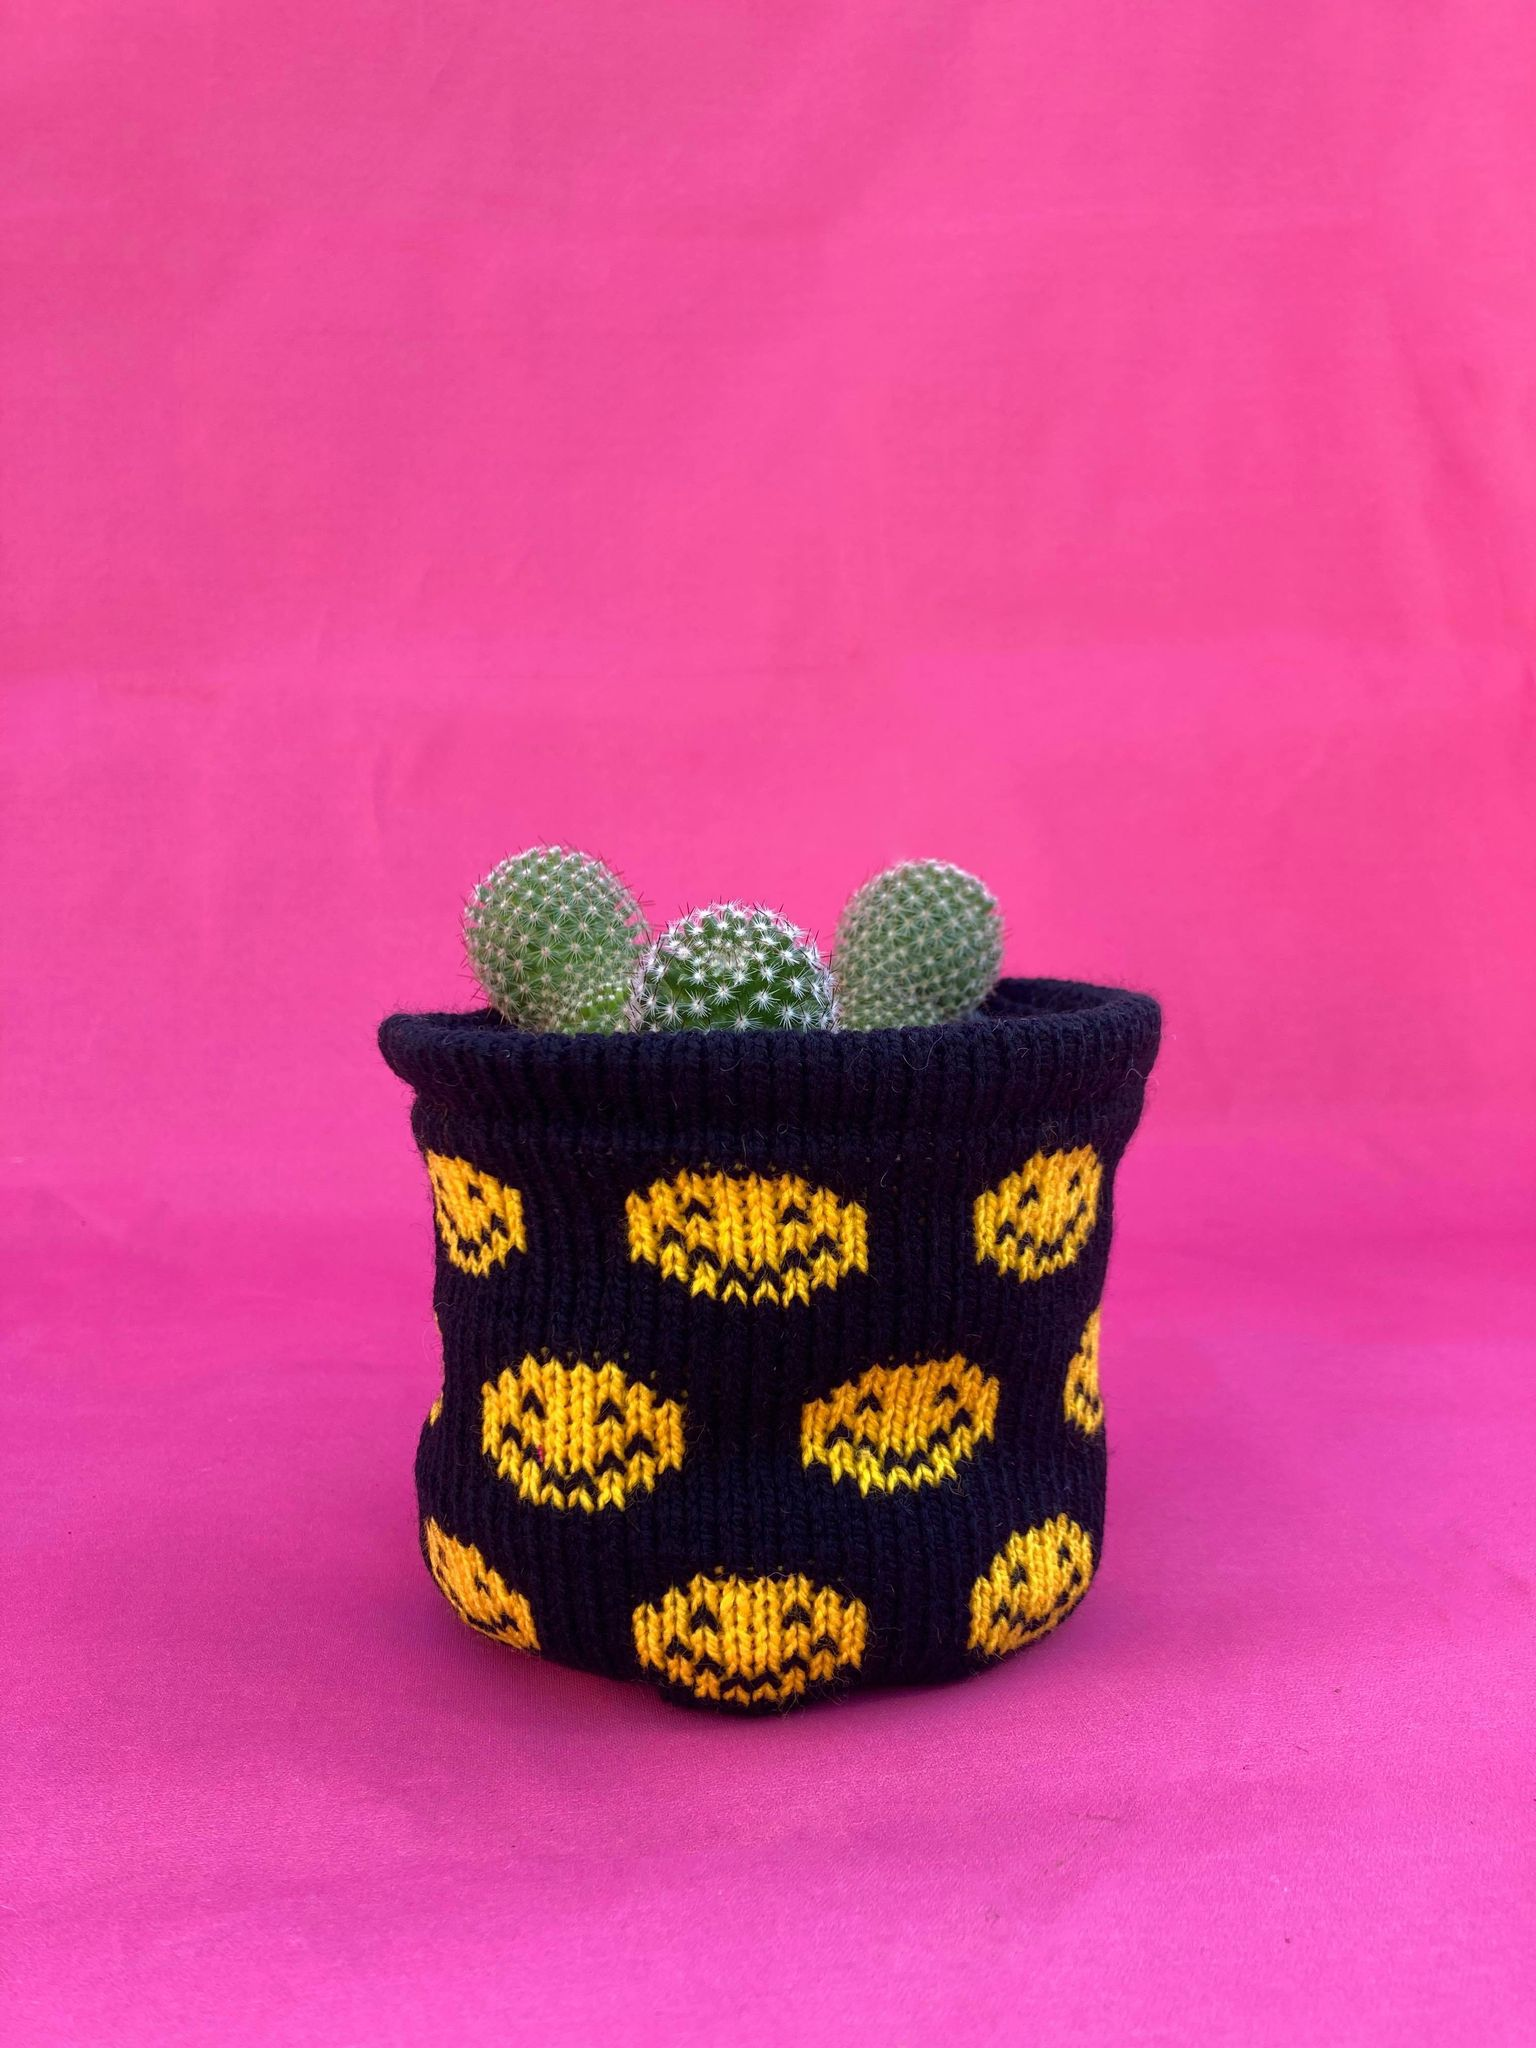 Small Smiley Pot Cover - Black and Bright Yellow